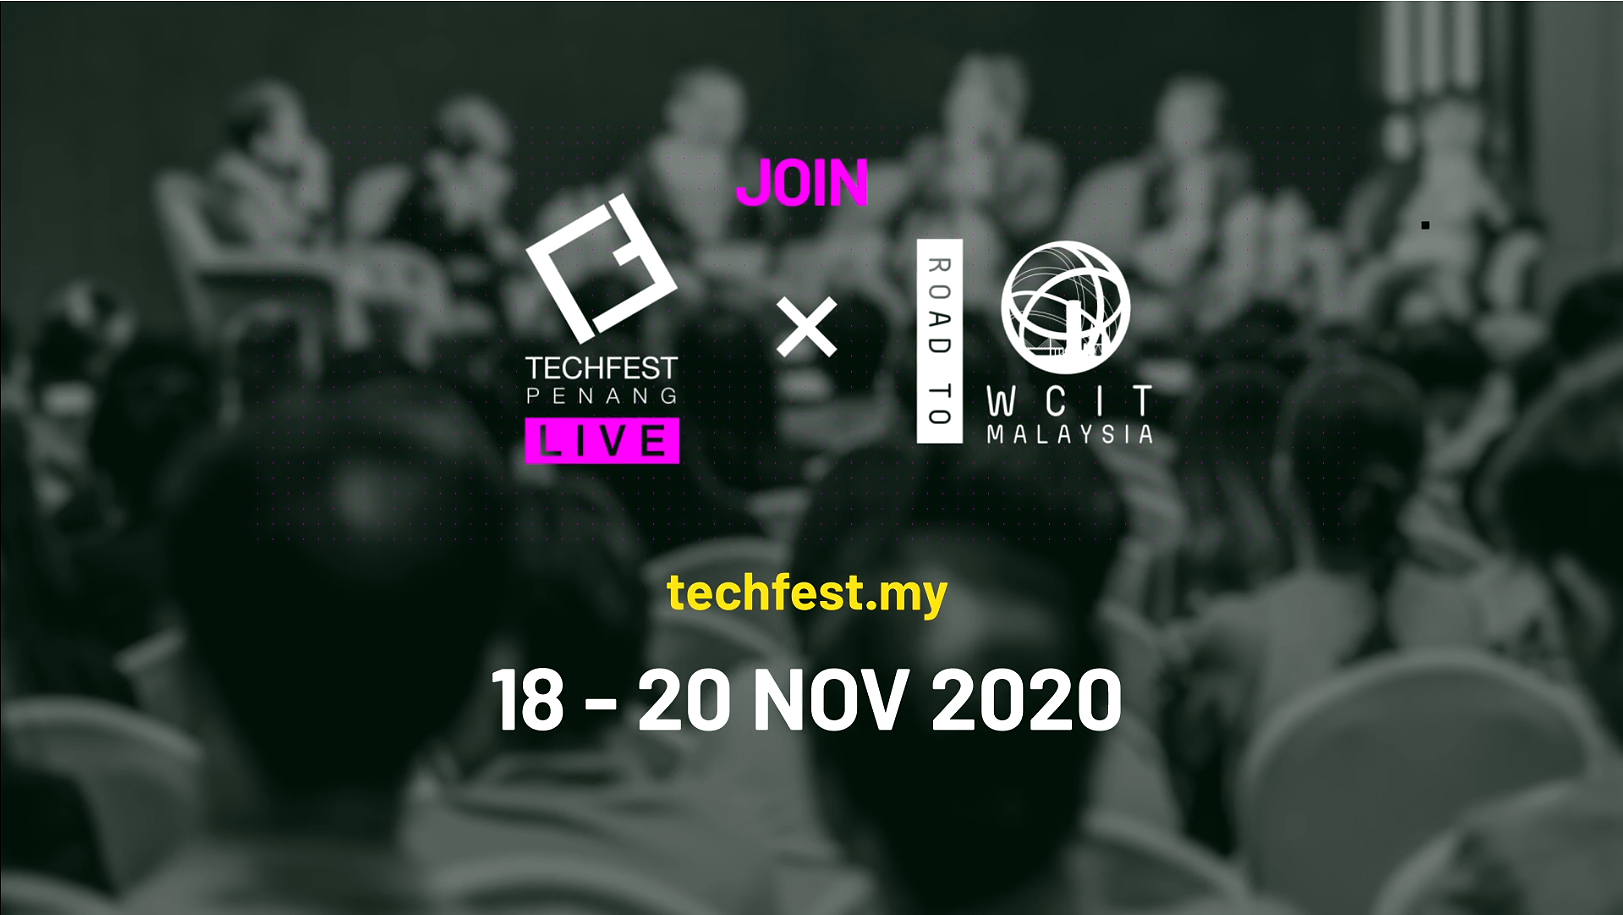 ROAD-TO-WCIT Malaysia is a highlight of the TECHFEST LIVE and it features the latest technology and innovation conversations and the 2020 Global ICT Excellence Awards